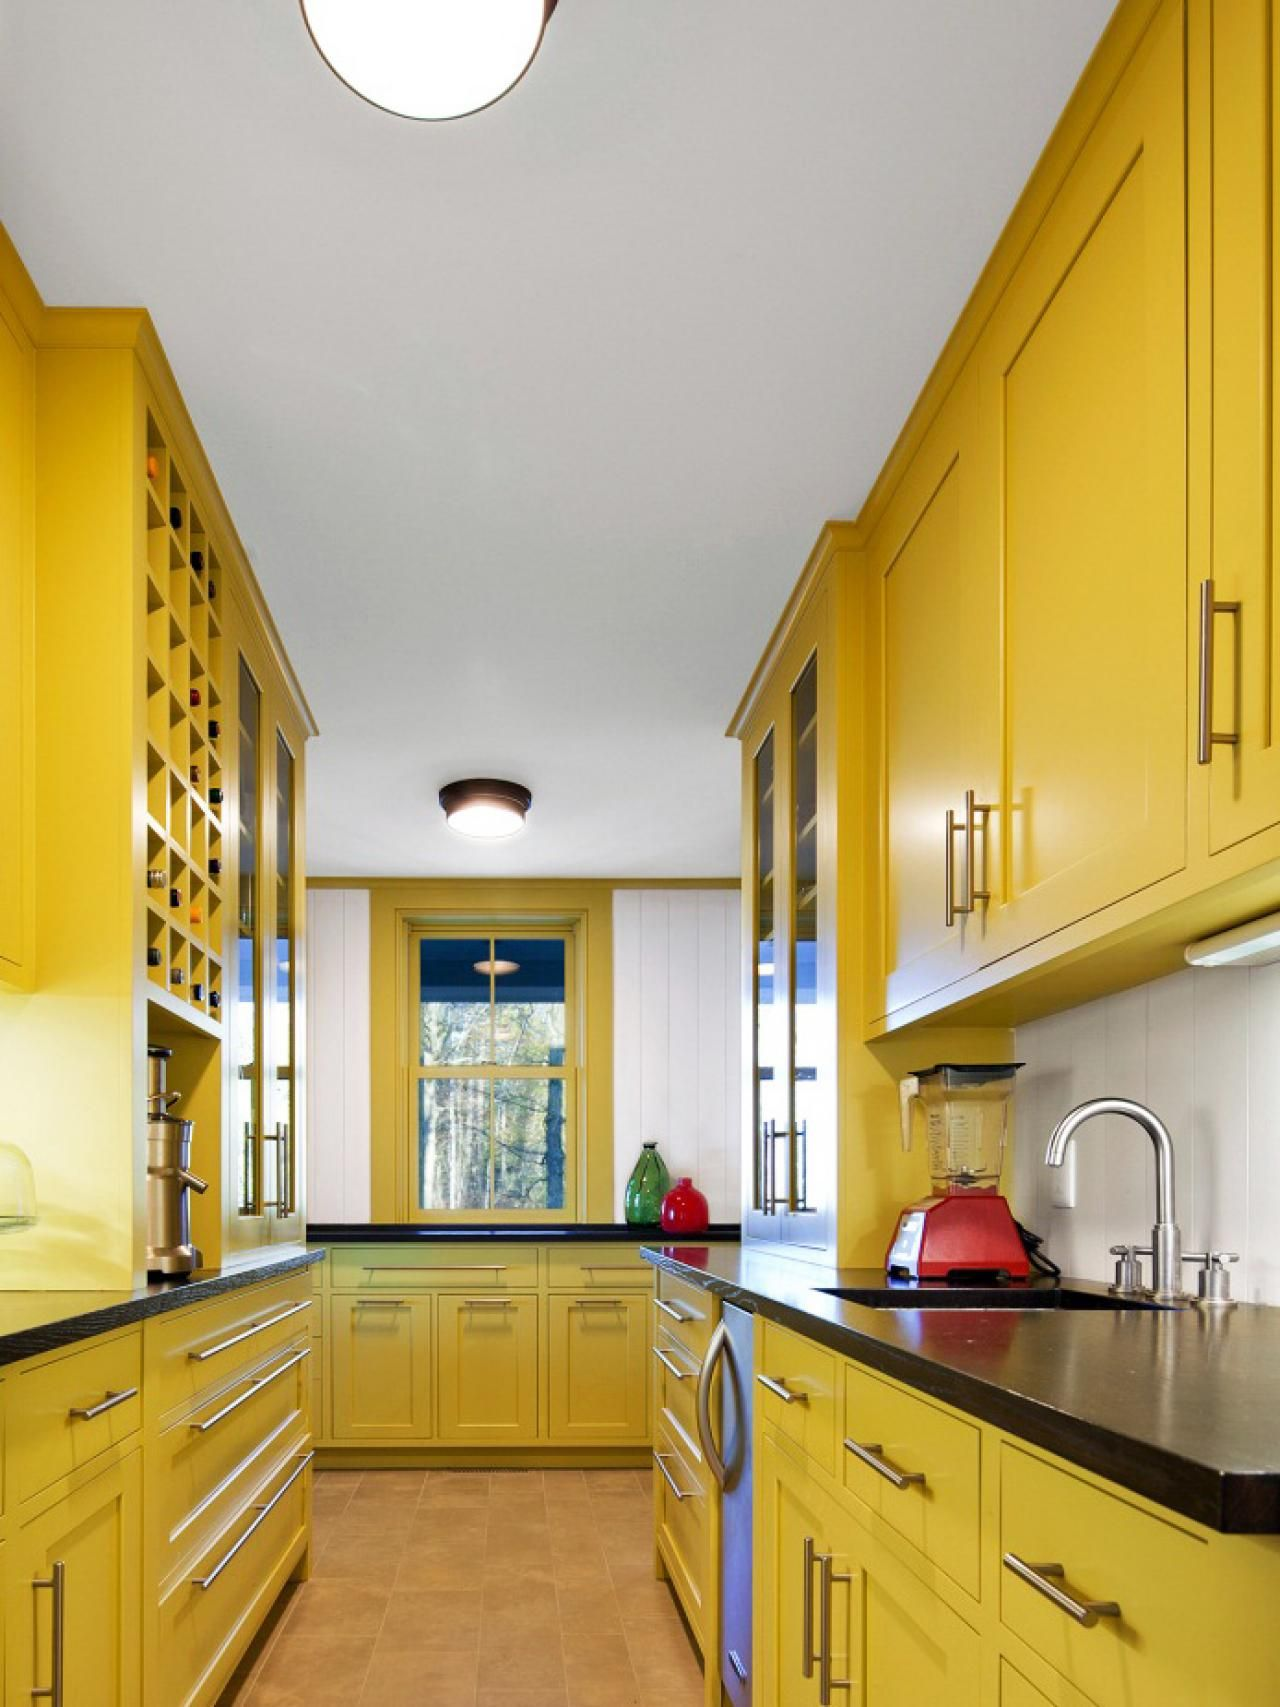 10 Kitchens That Pop With Color Yellow Kitchen Decor Interior Design Kitchen Kitchen Design Decor